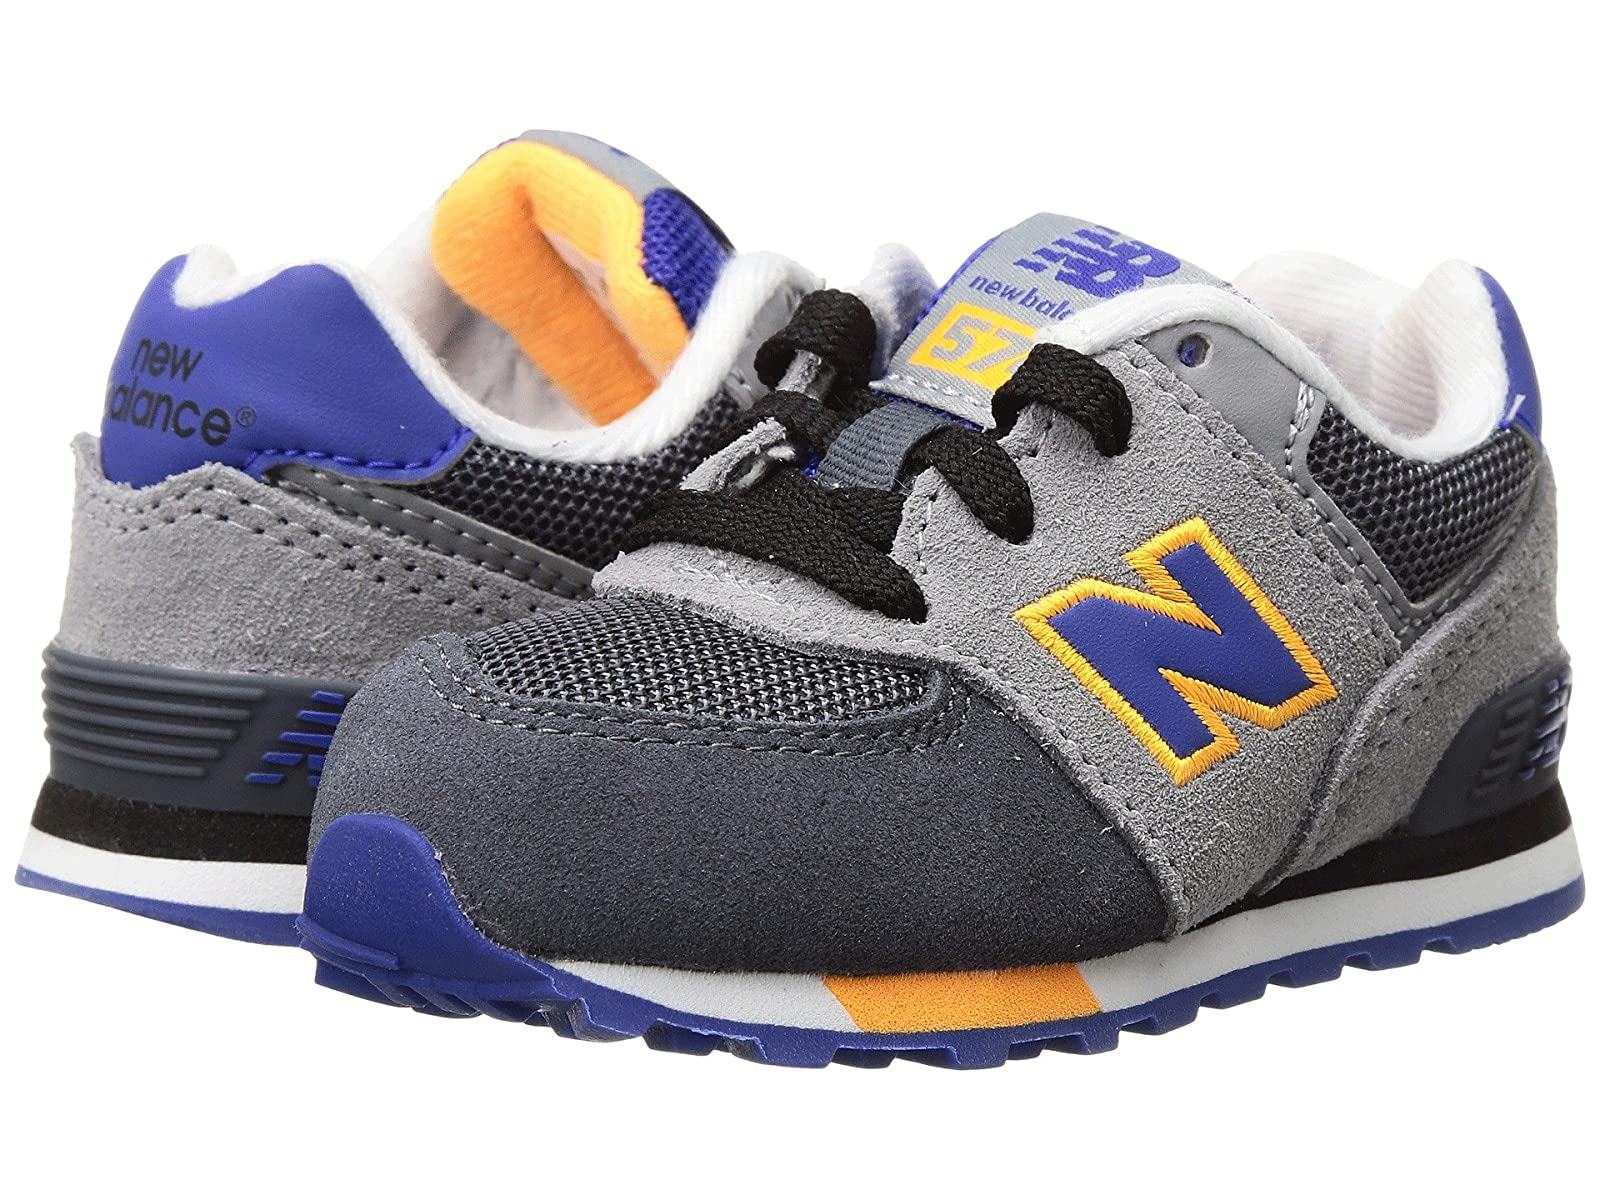 New Balance Kids KL574v1 (Infant/Toddler)Cheap and distinctive eye-catching shoes